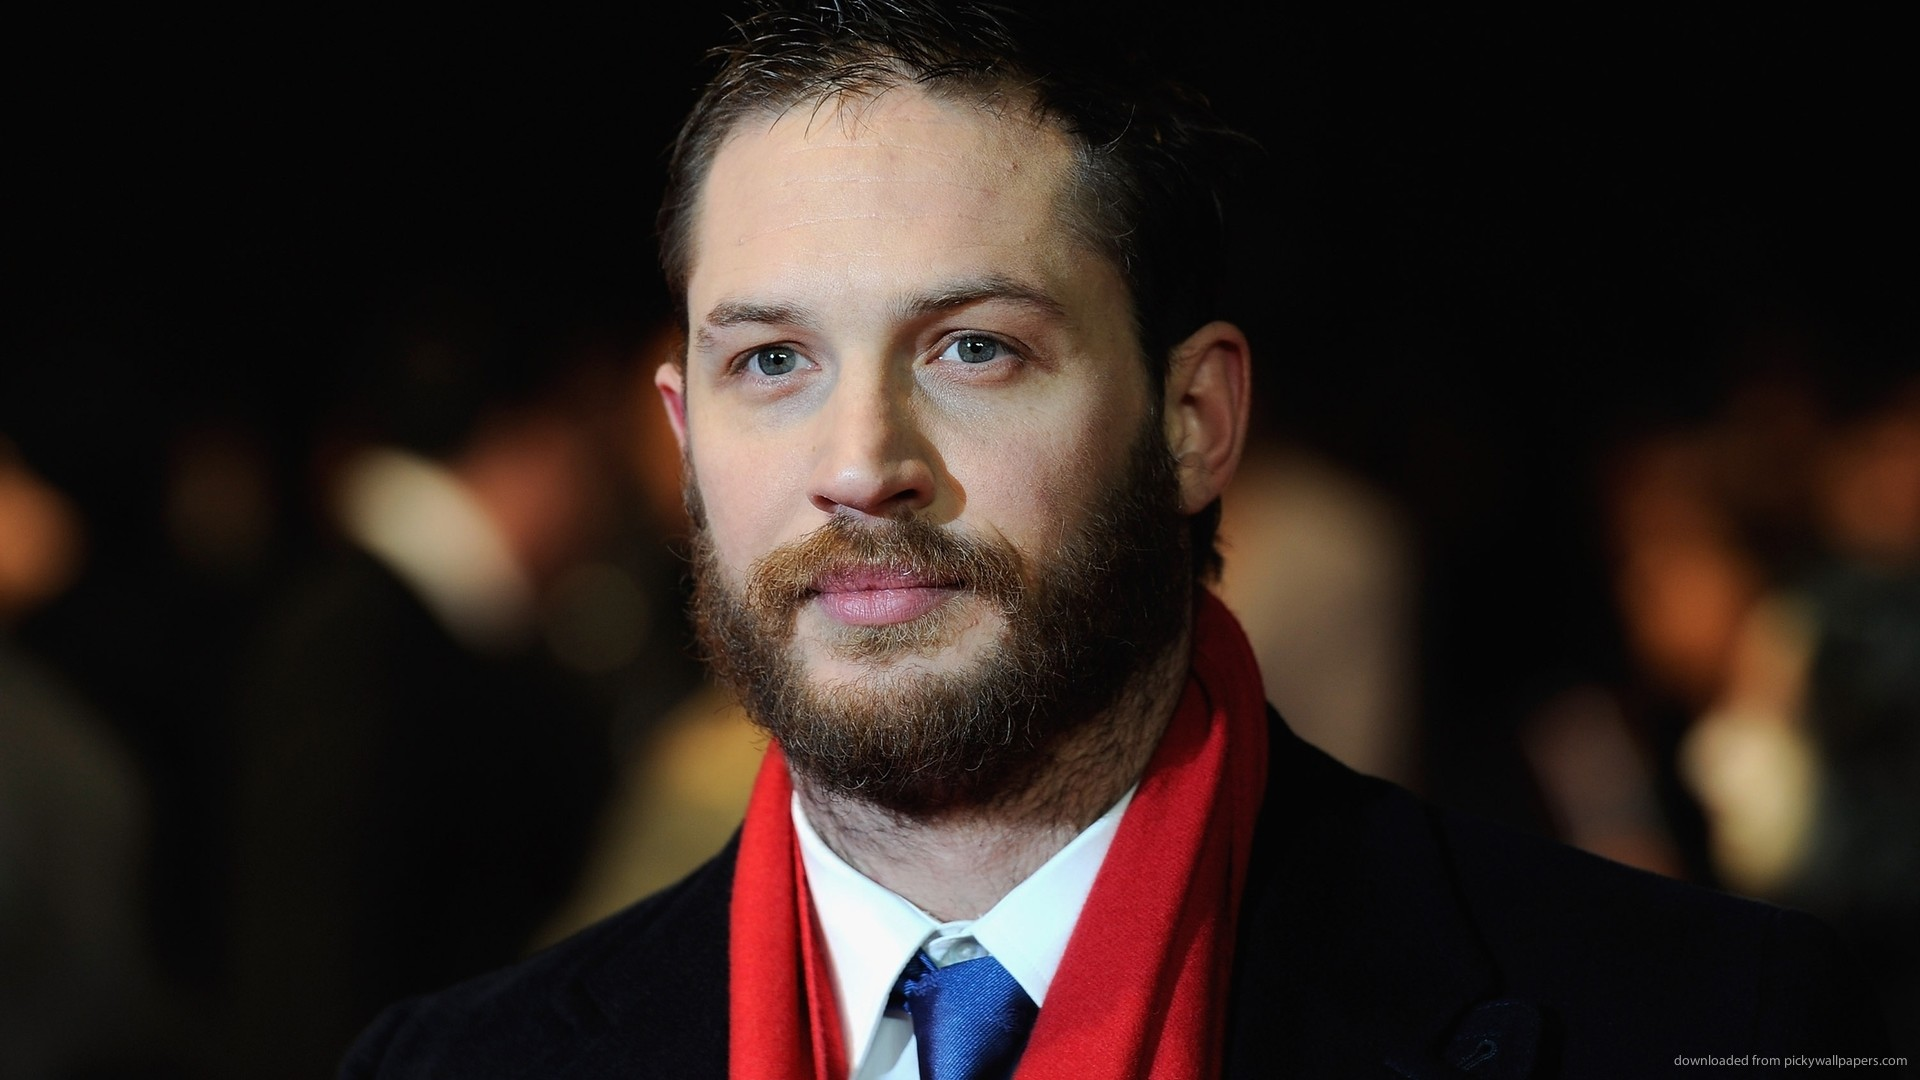 1487x2048 HD Wallpaper And Background Photos Of Tom Hardy Is Tommy Conlon Men Warrior For Fans Images